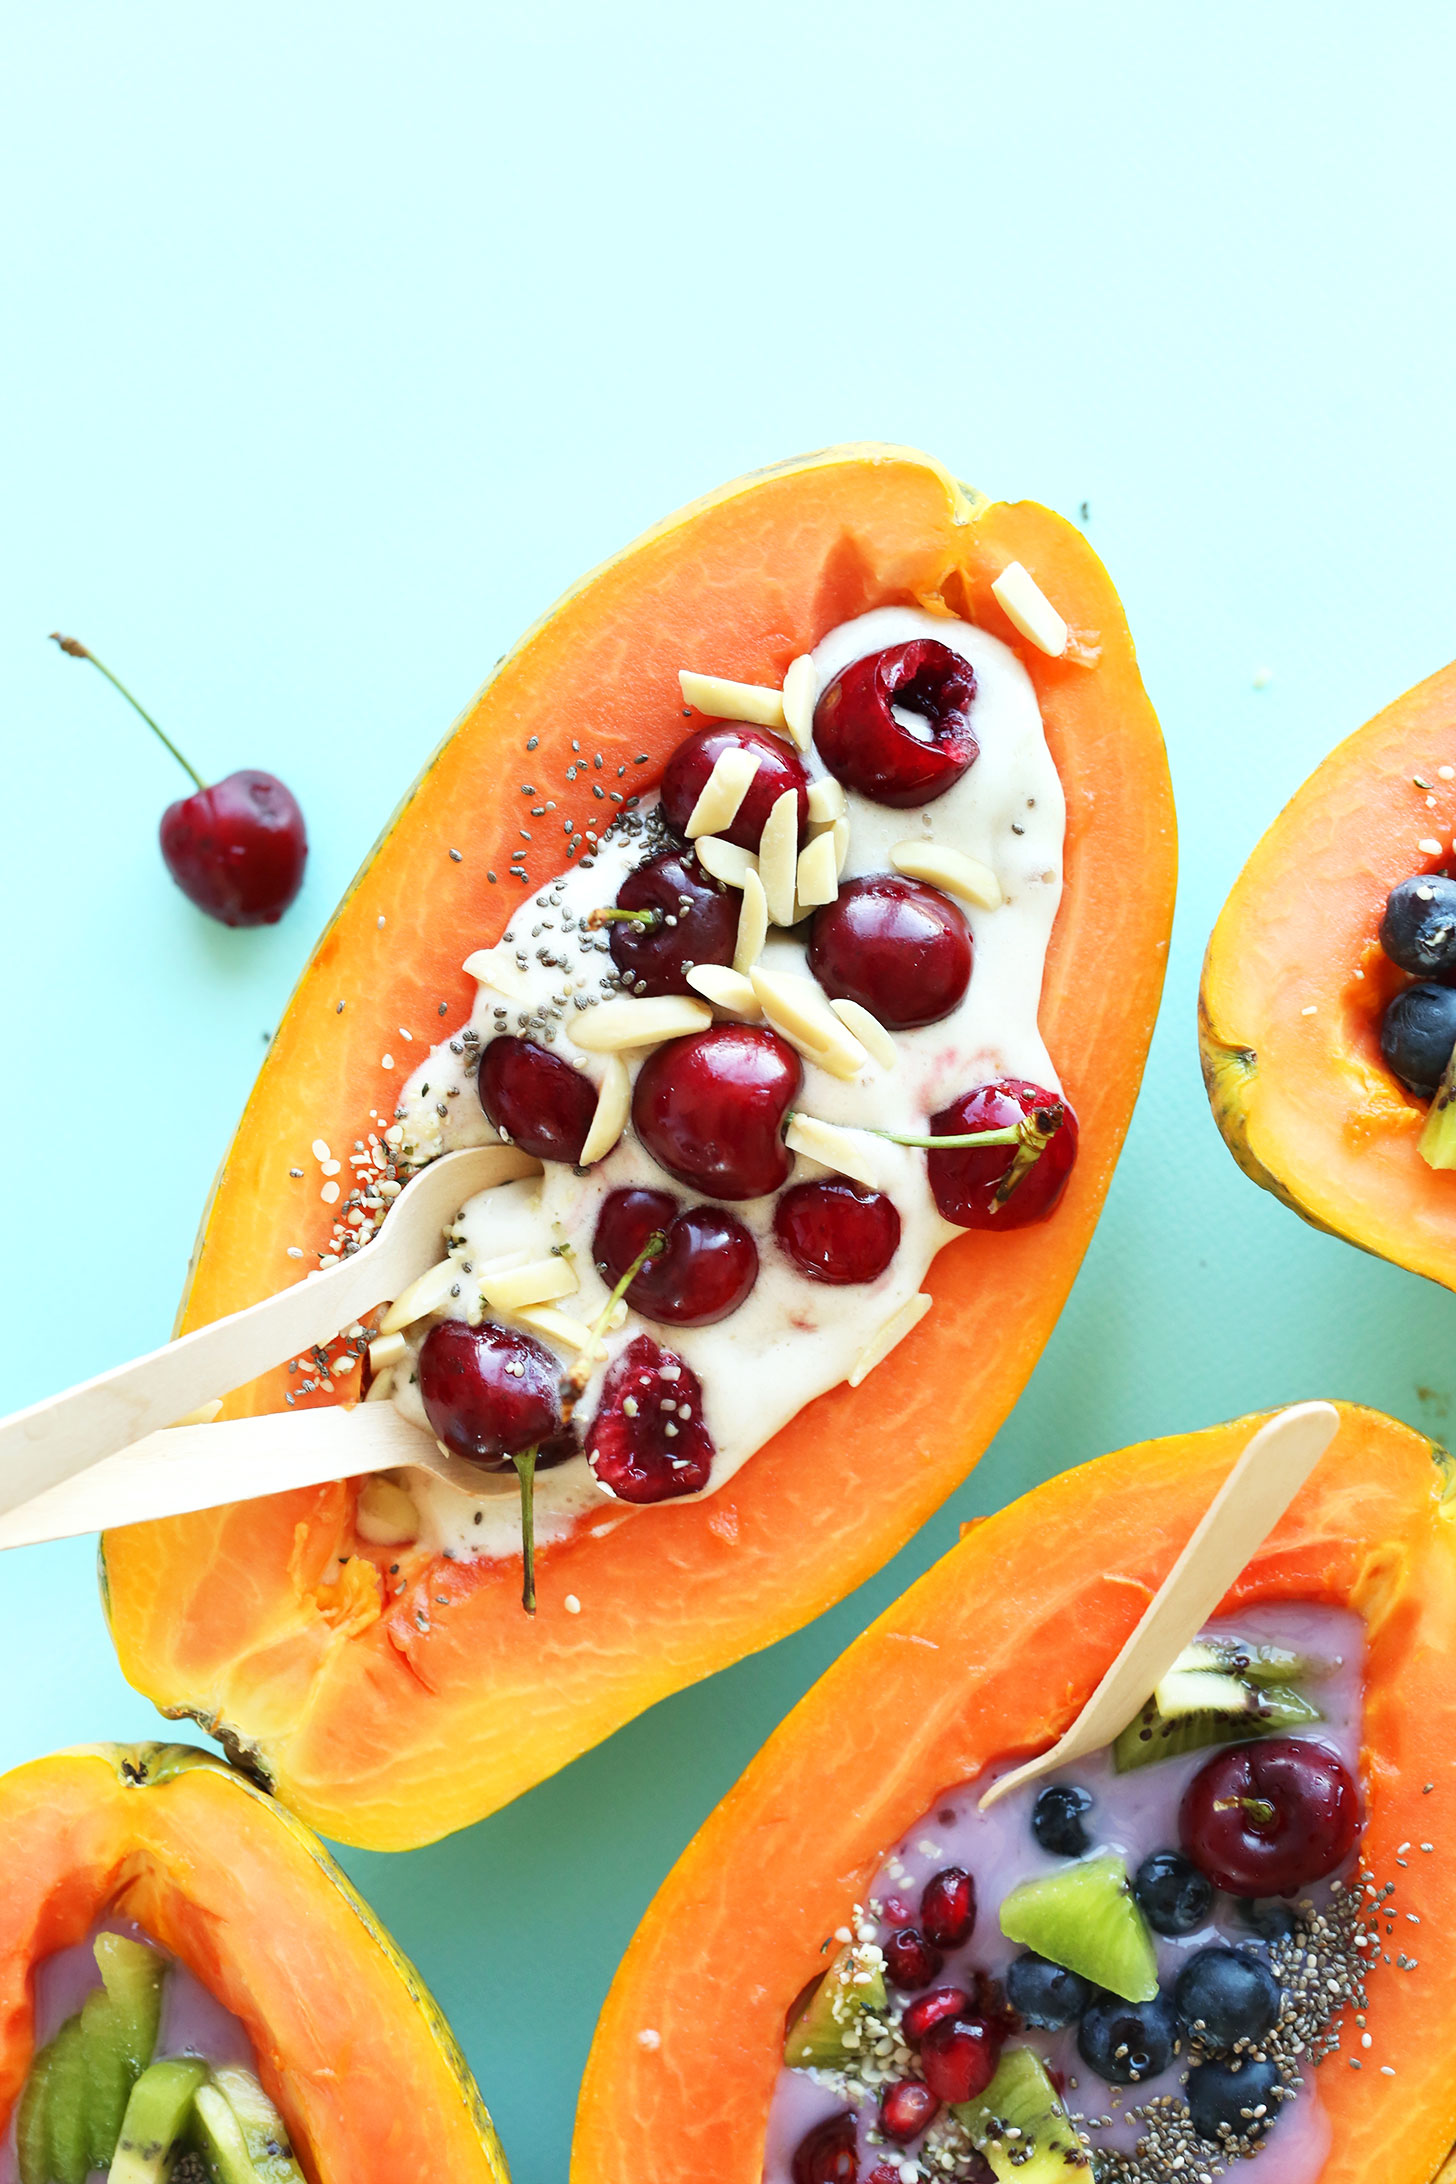 Papaya Boats with delicious summer toppings for a gluten-free vegan snack